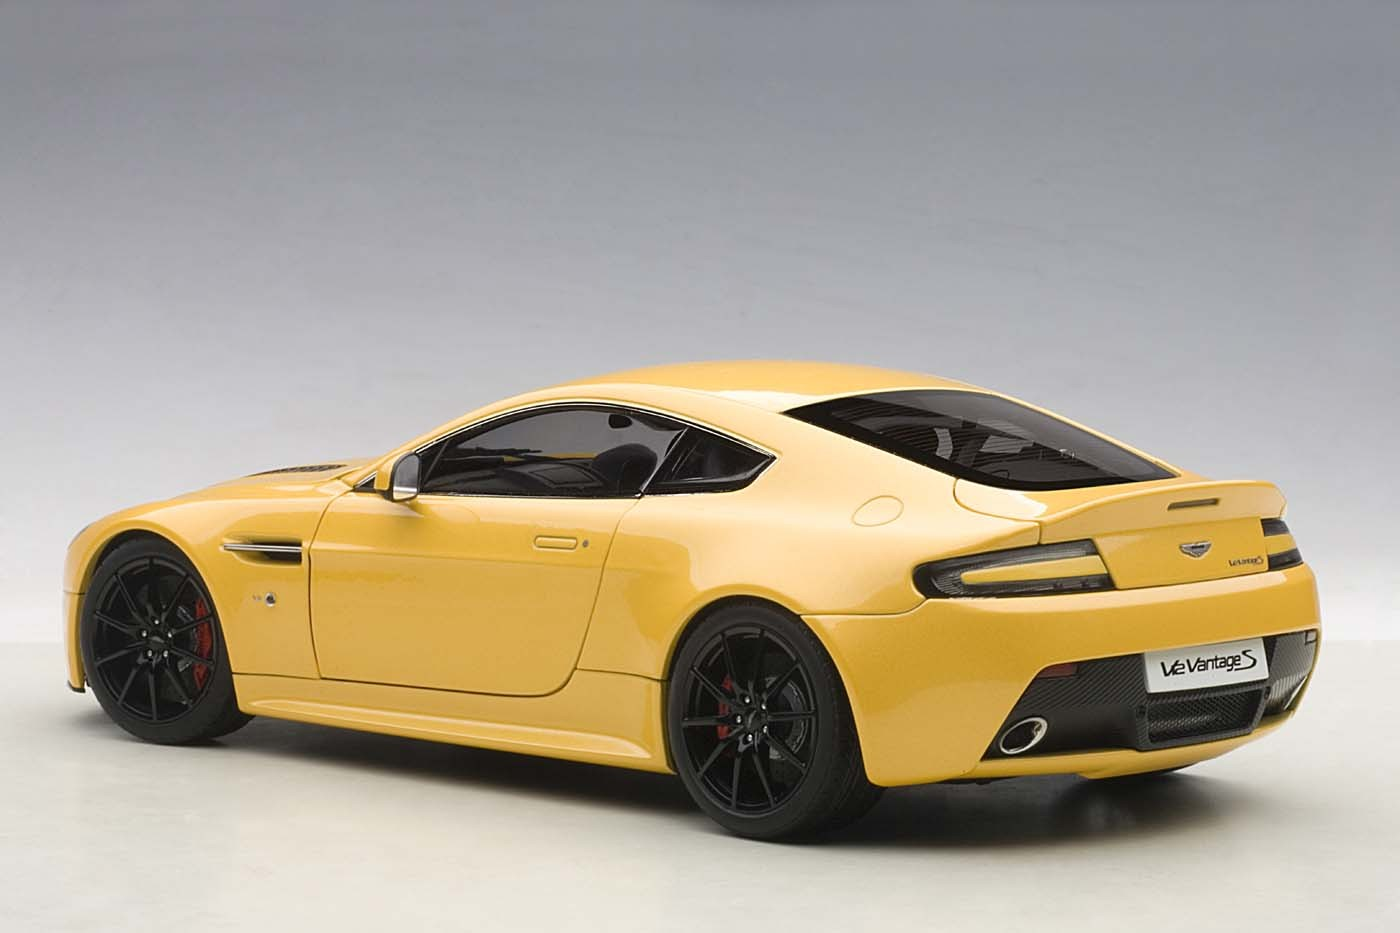 Highly Detailed Autoart Diecast Model Car Yellow Tang Aston Martin Vantage V12 S 2015 Autoart 70252 Scale 1 18 Eztoys Diecast Models And Collectibles